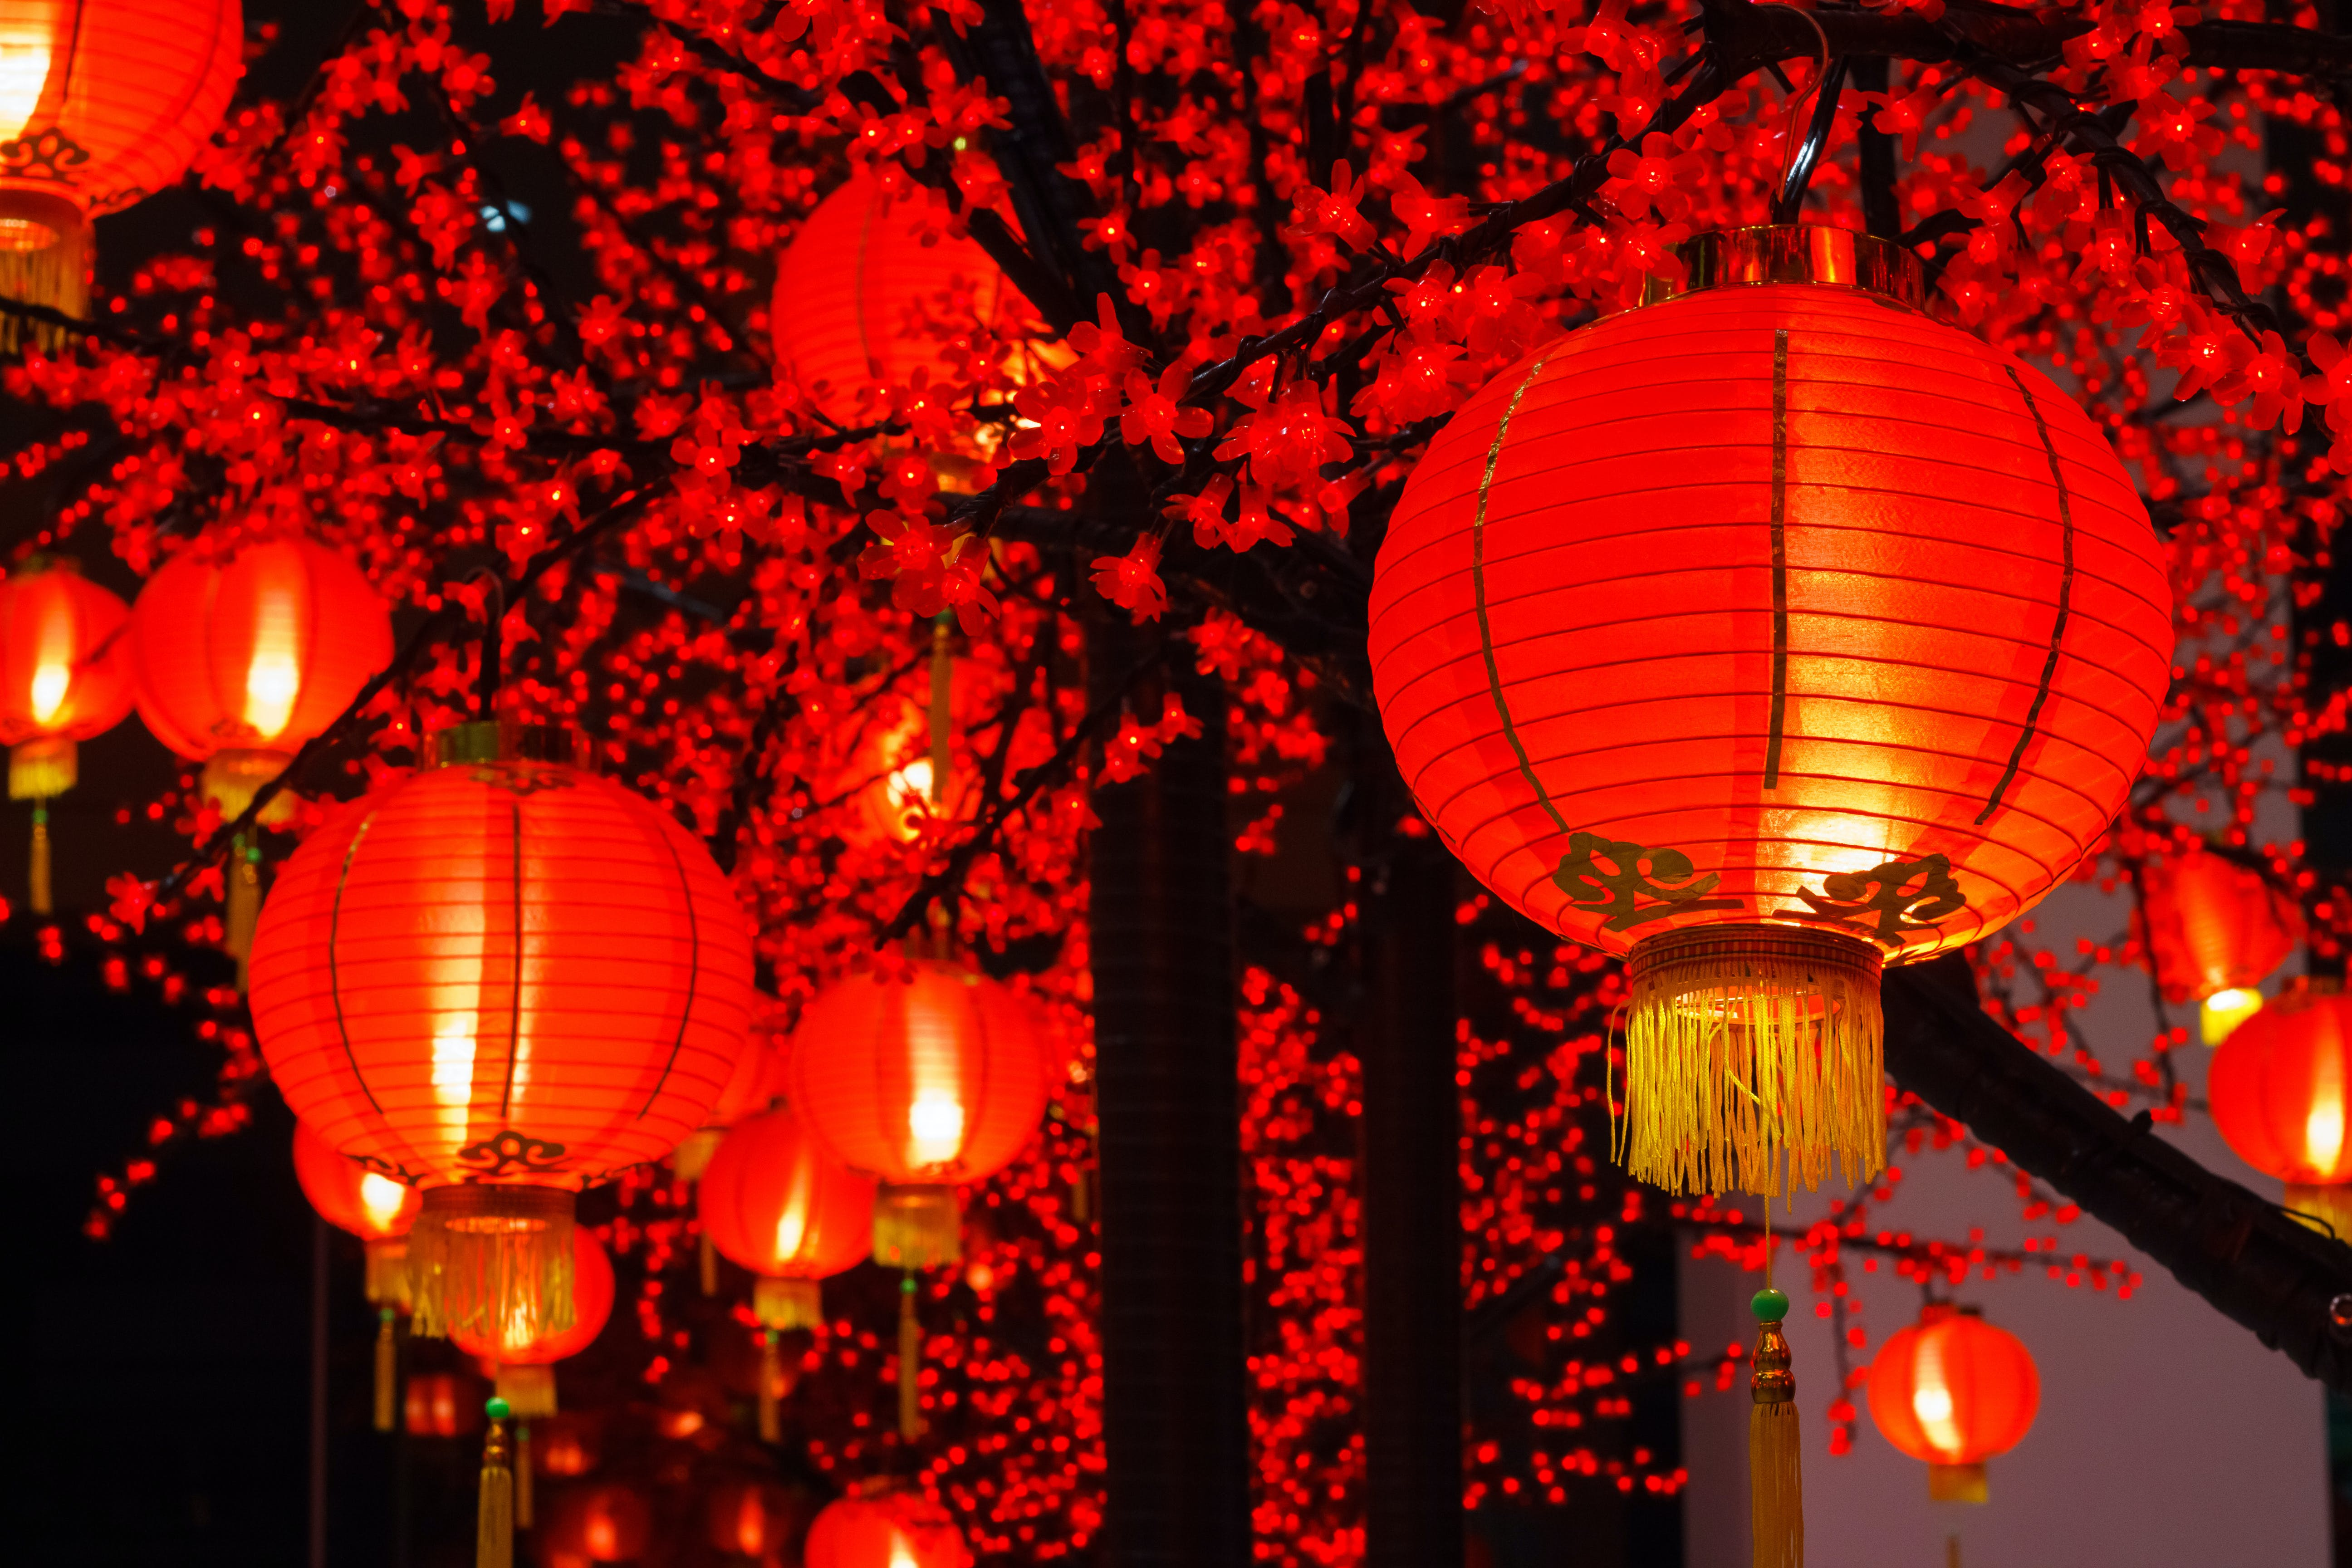 Ring in the New Year with Chinese lanterns, dragons, fireworks and more!